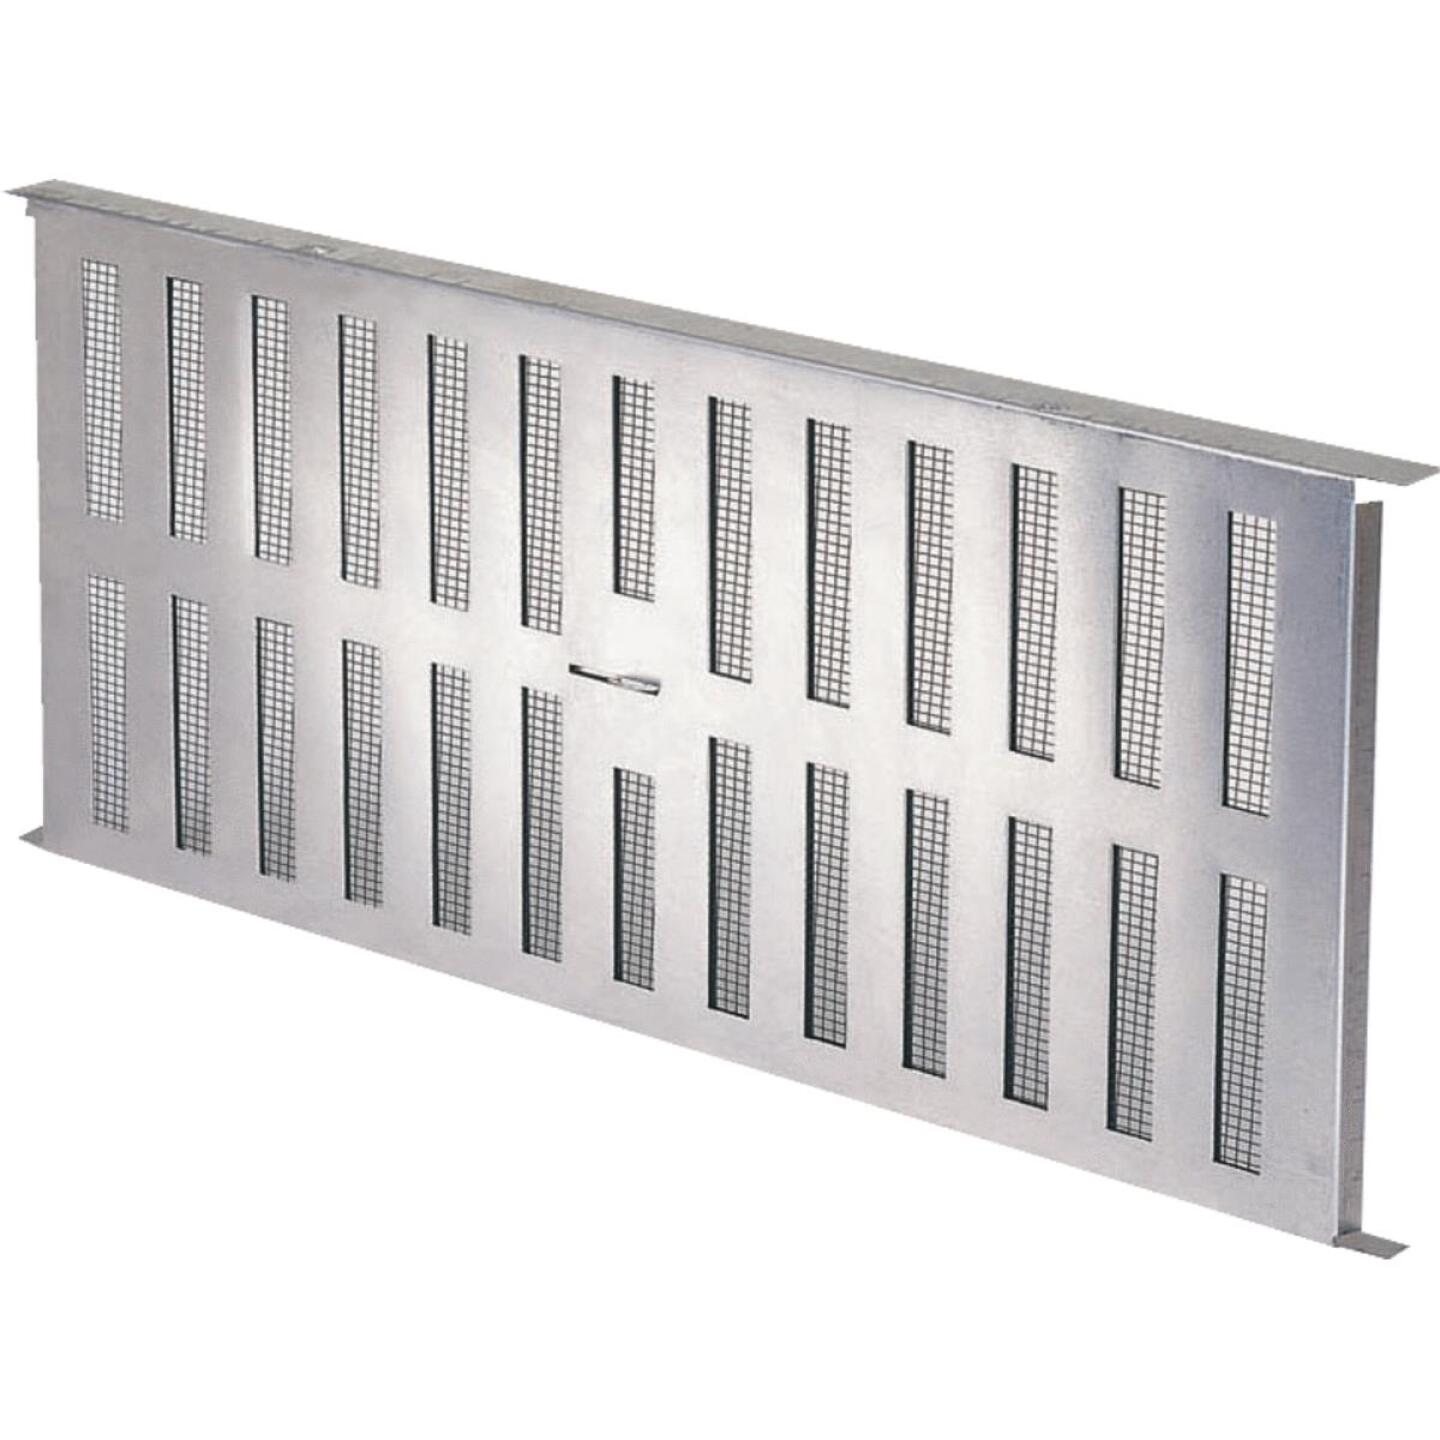 Air Vent 8 In. x 16 In. Aluminum Manual Foundation Vent with Adjustable Sliding Damper Image 3